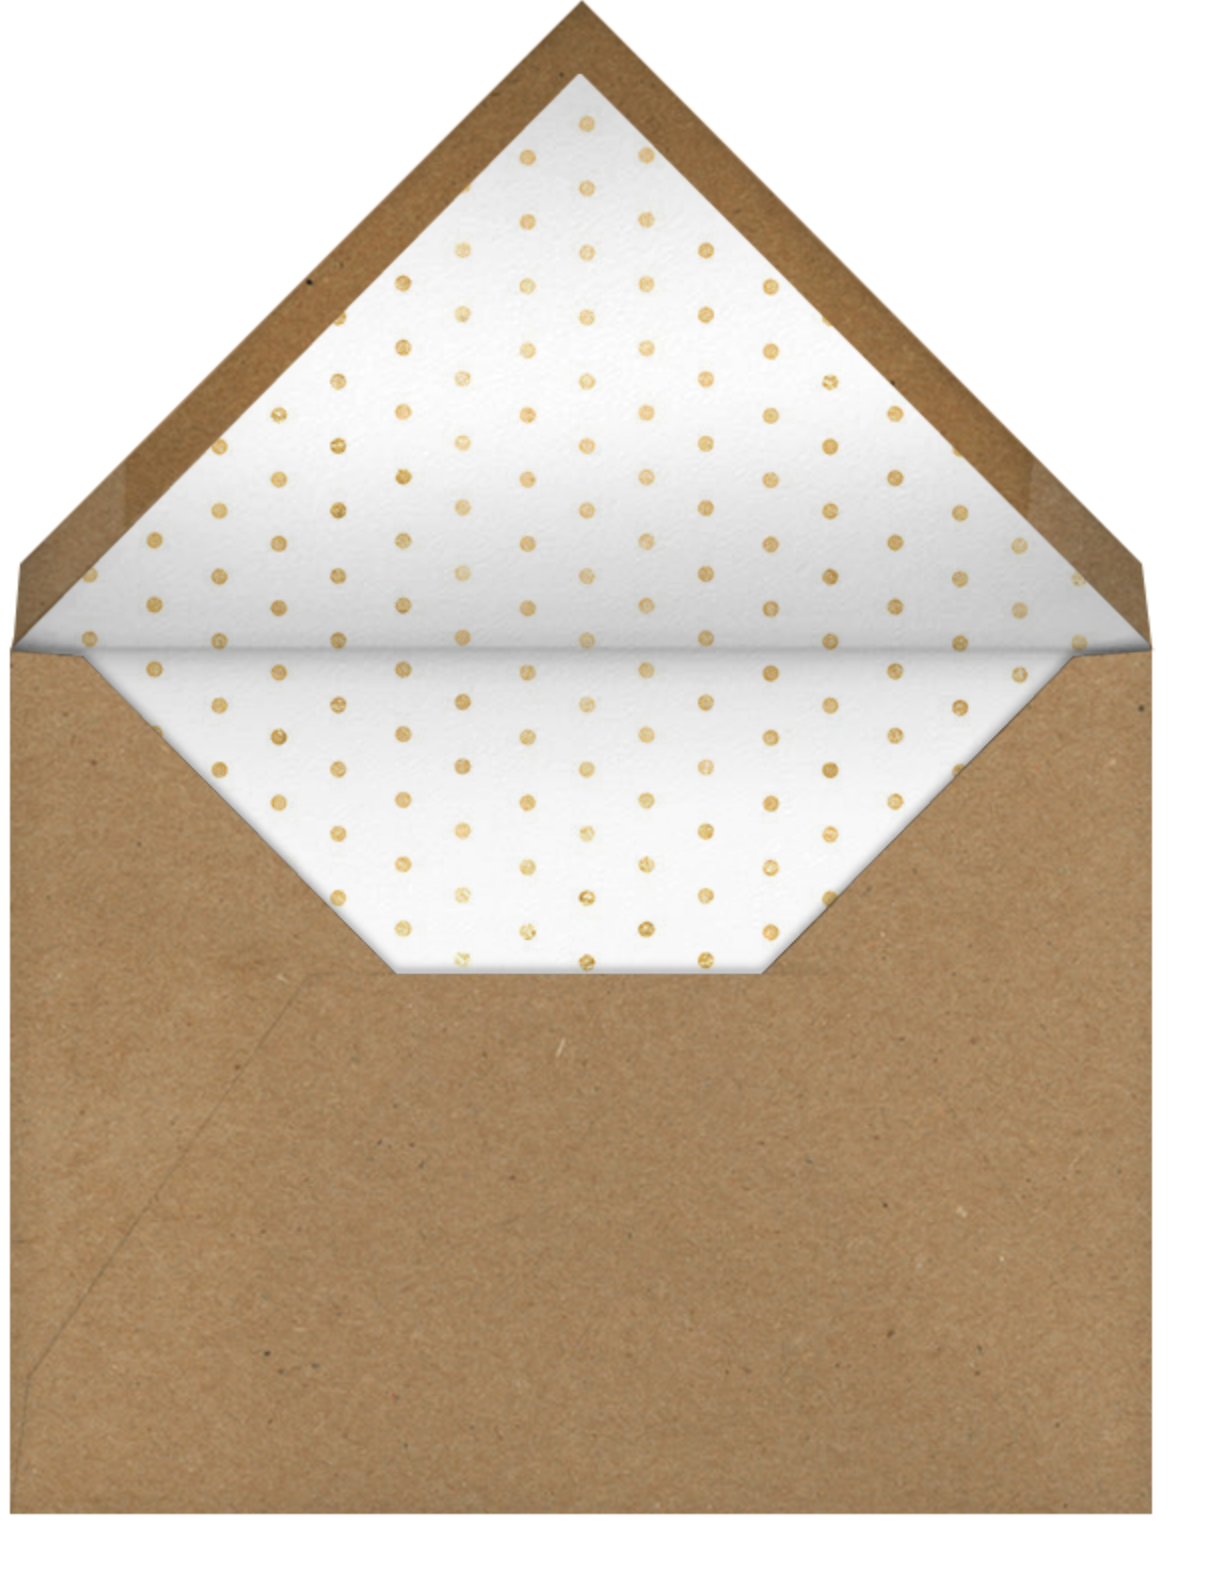 Full-Page Photo (Double-Sided) - Paperless Post - Kids' birthday - envelope back